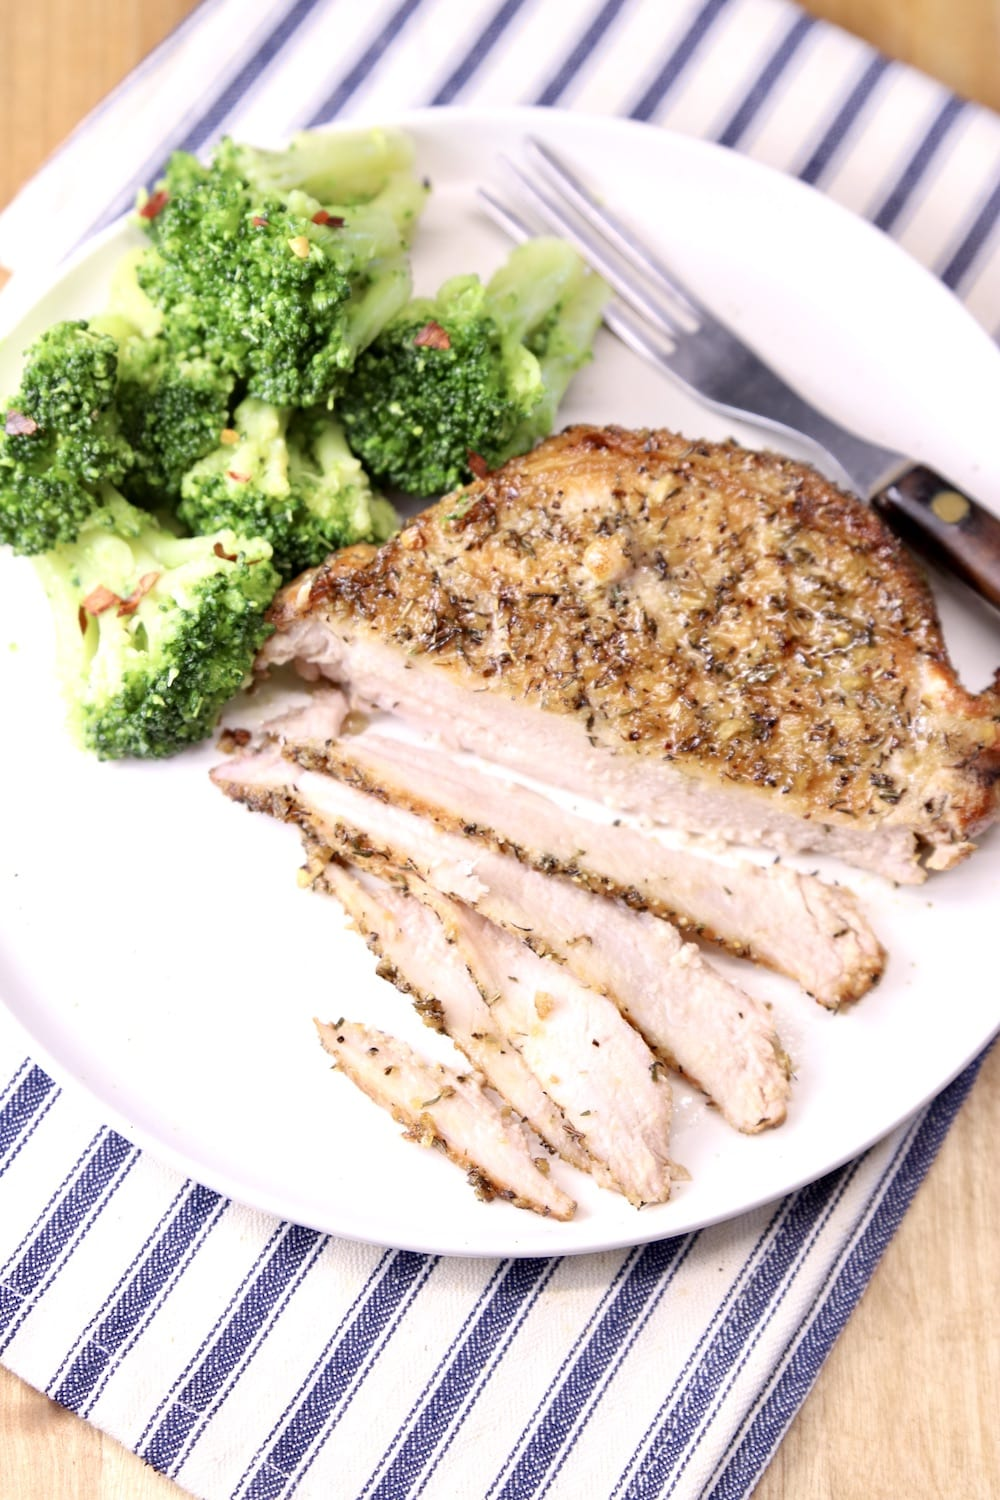 grilled pork chop on a plate with broccoli